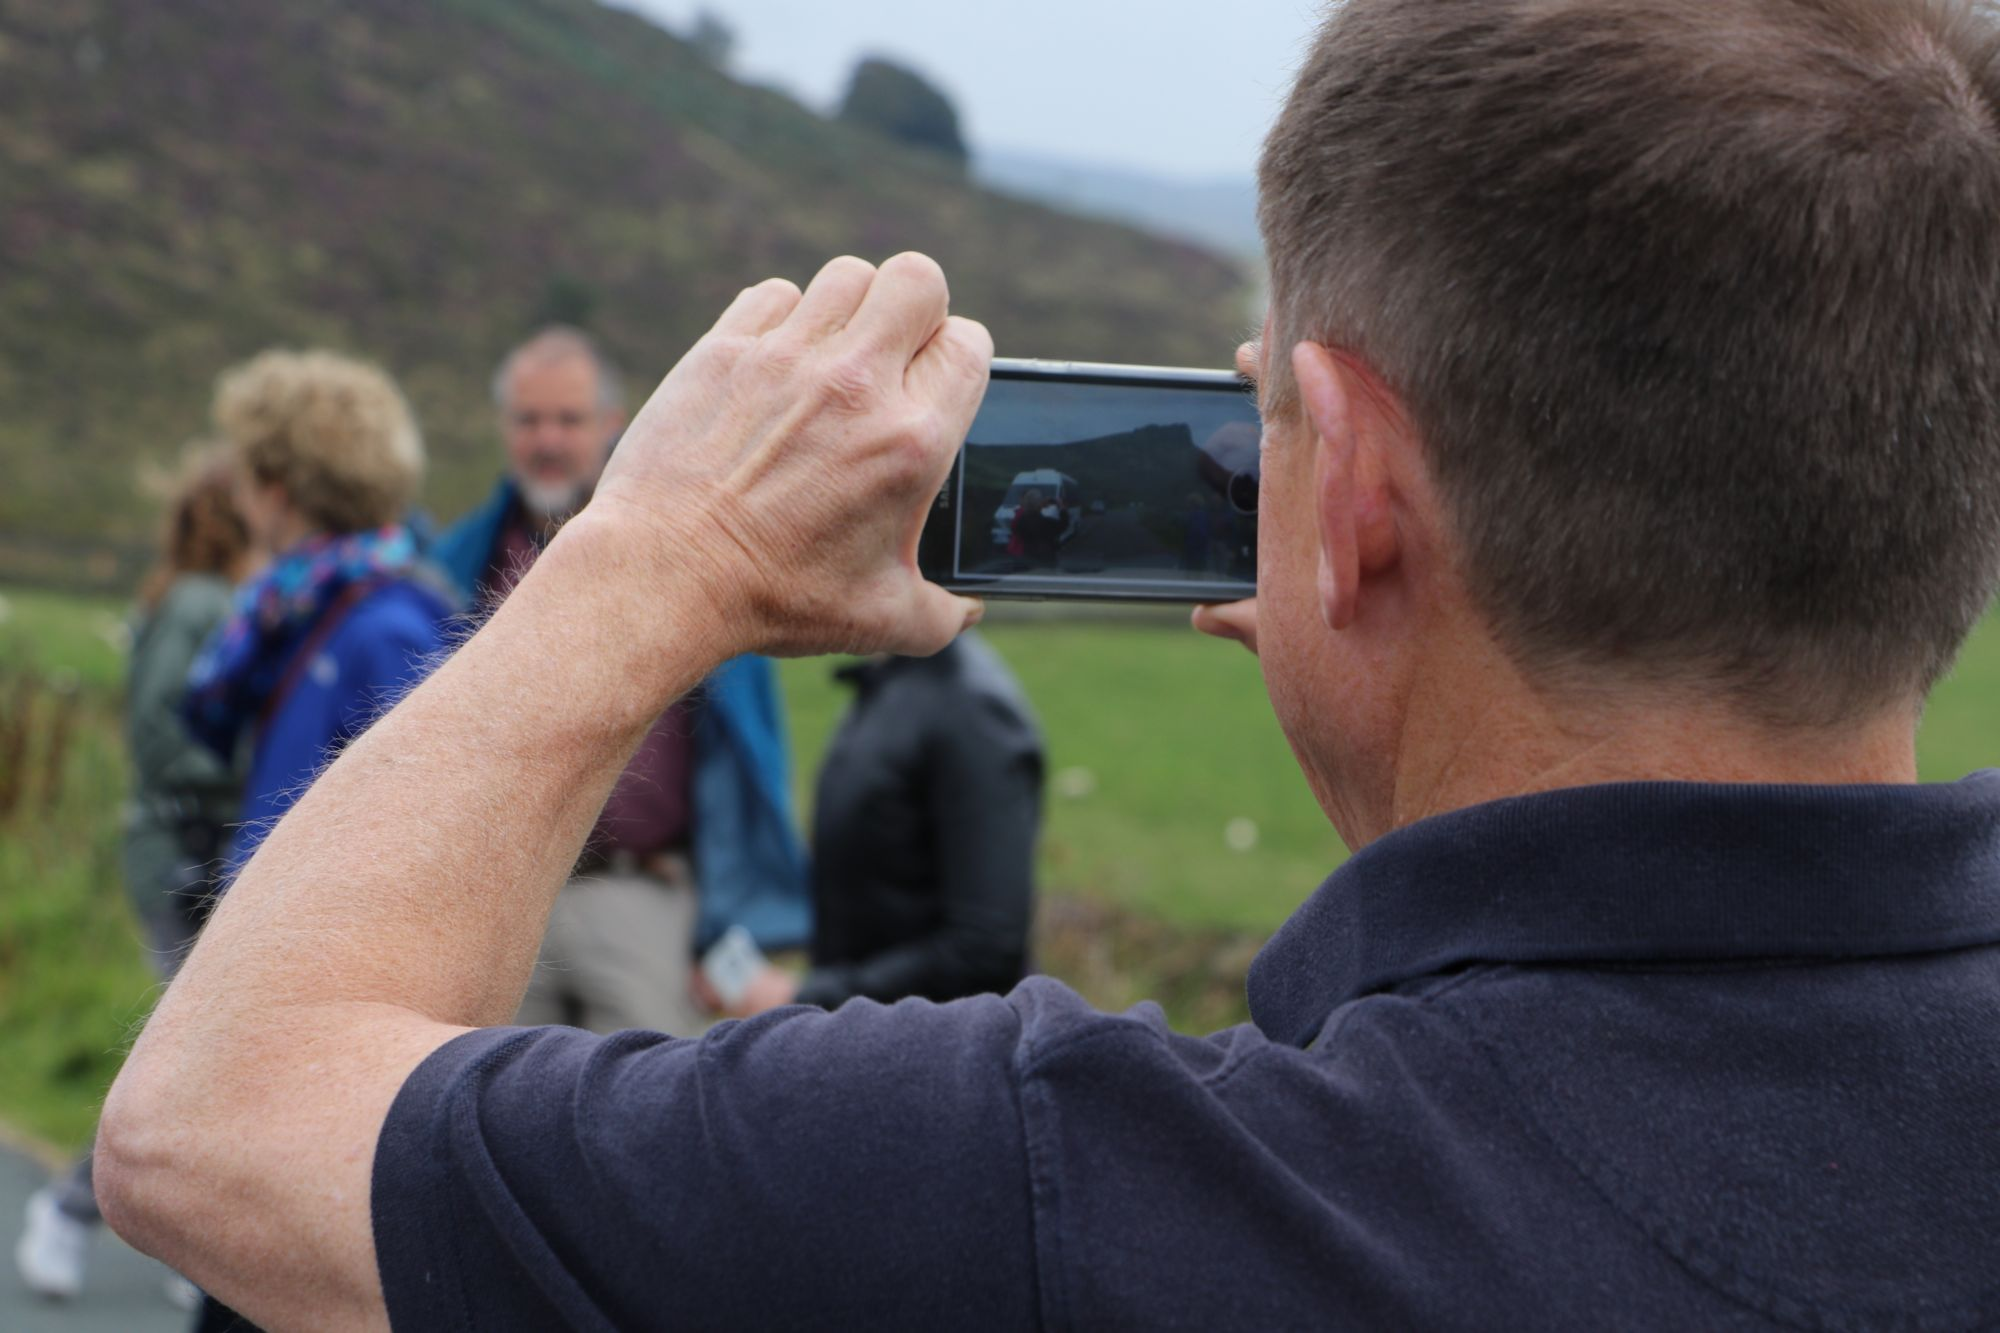 Steve taking a photo on iPhone